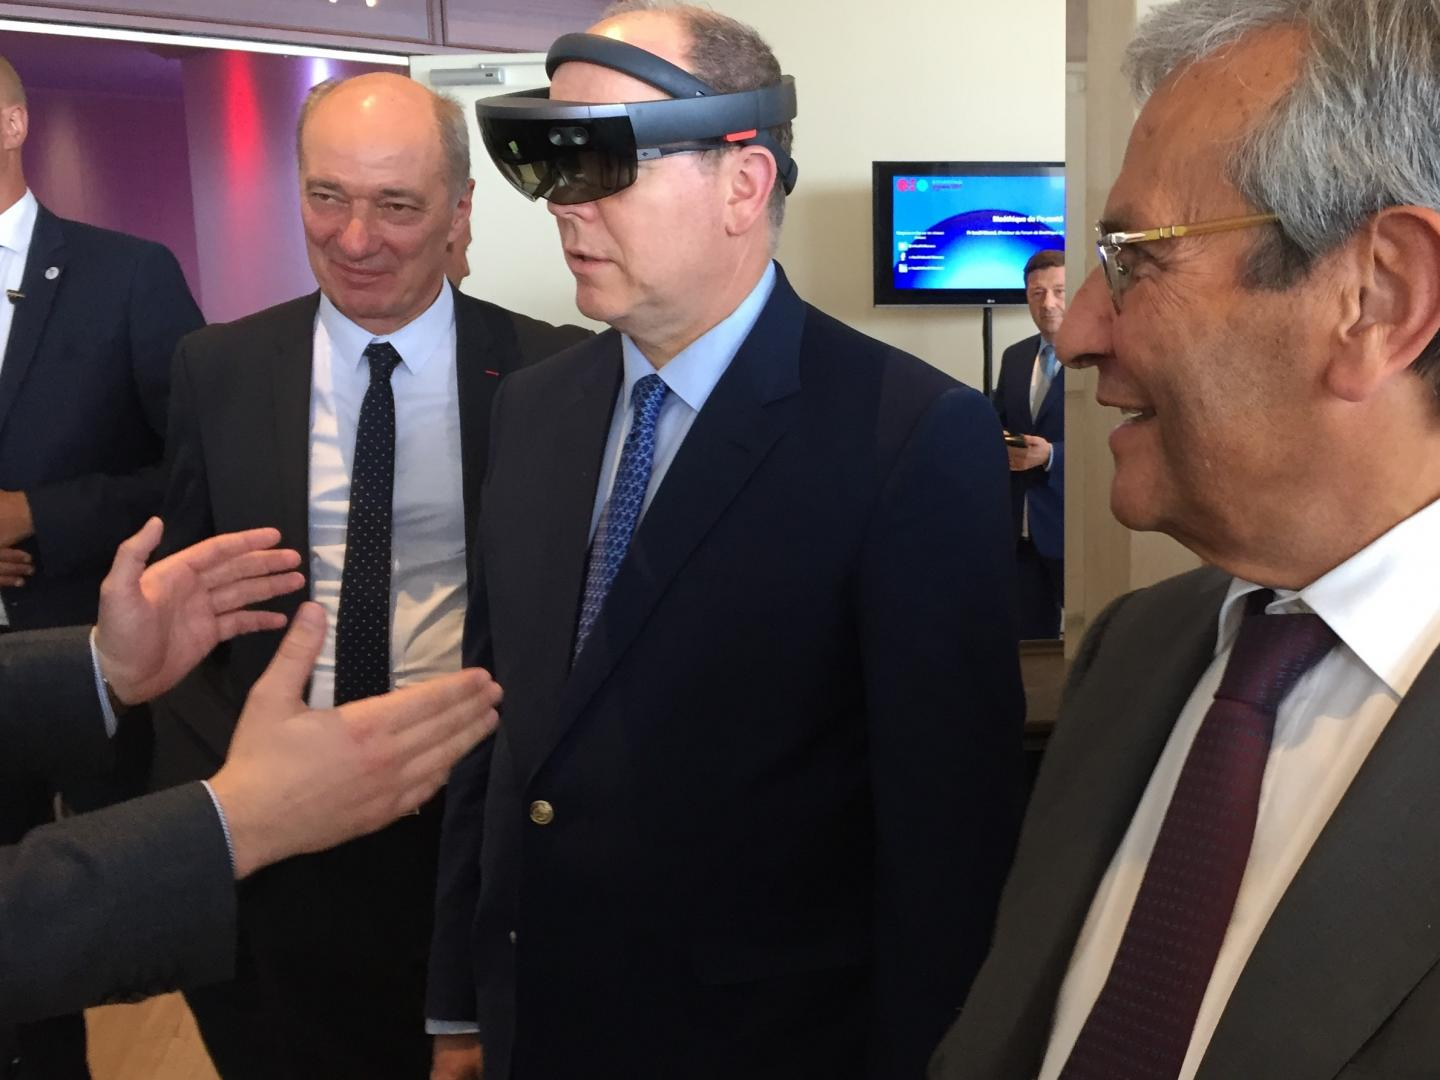 Prince Albert II tried the HoloLens